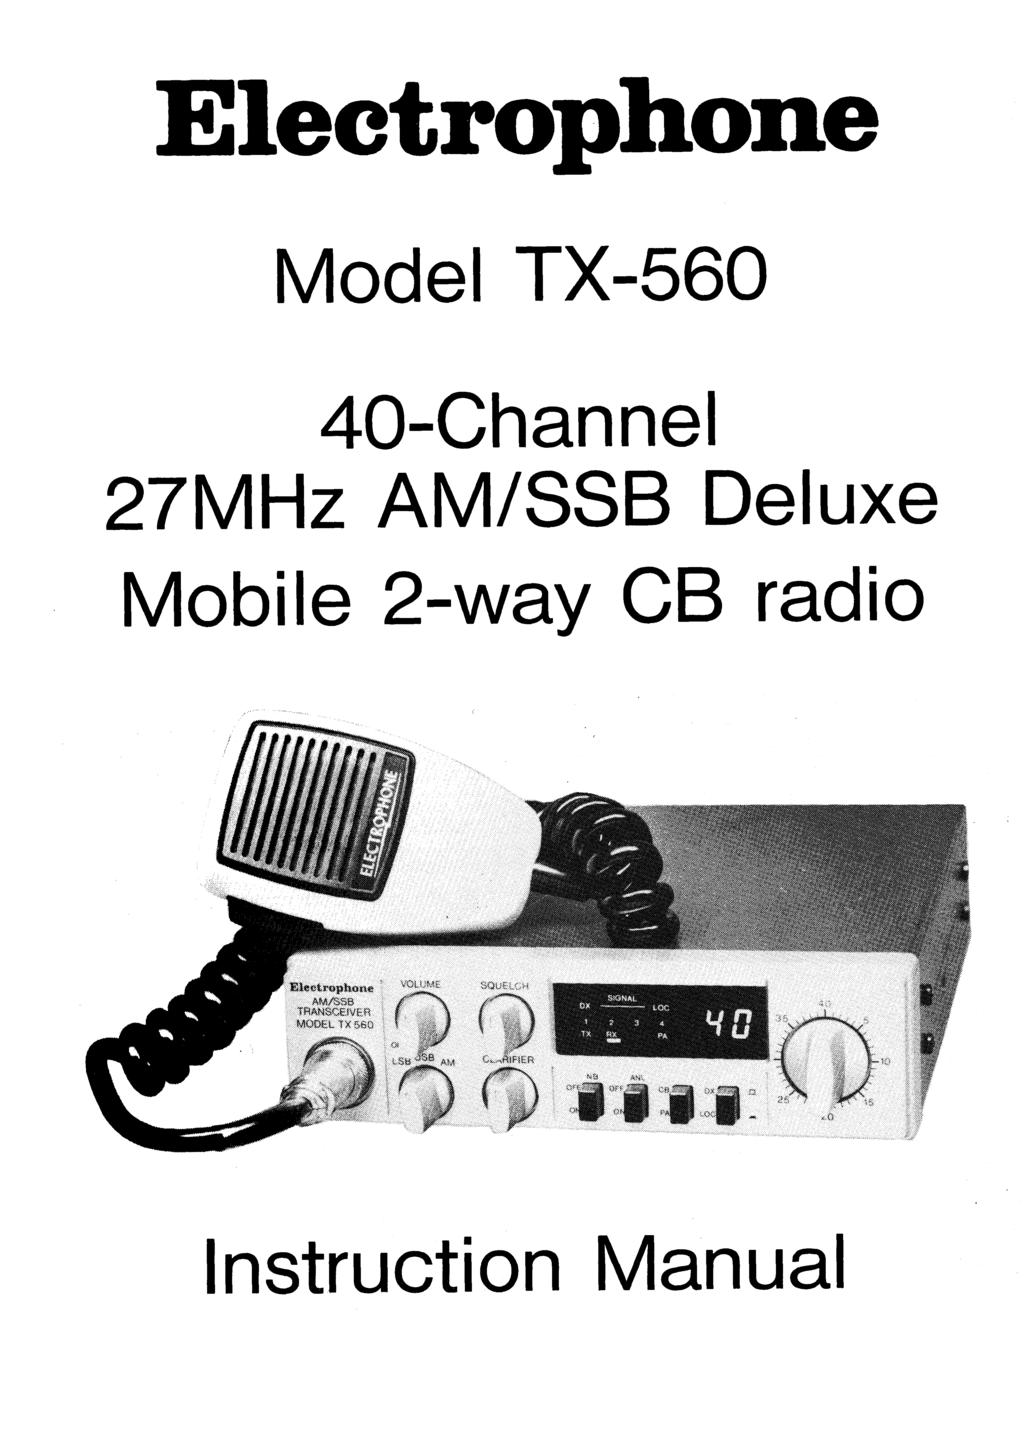 Electrophone Model TX-560 40-Channel 27MHz AM/SSB Deluxe Mobile